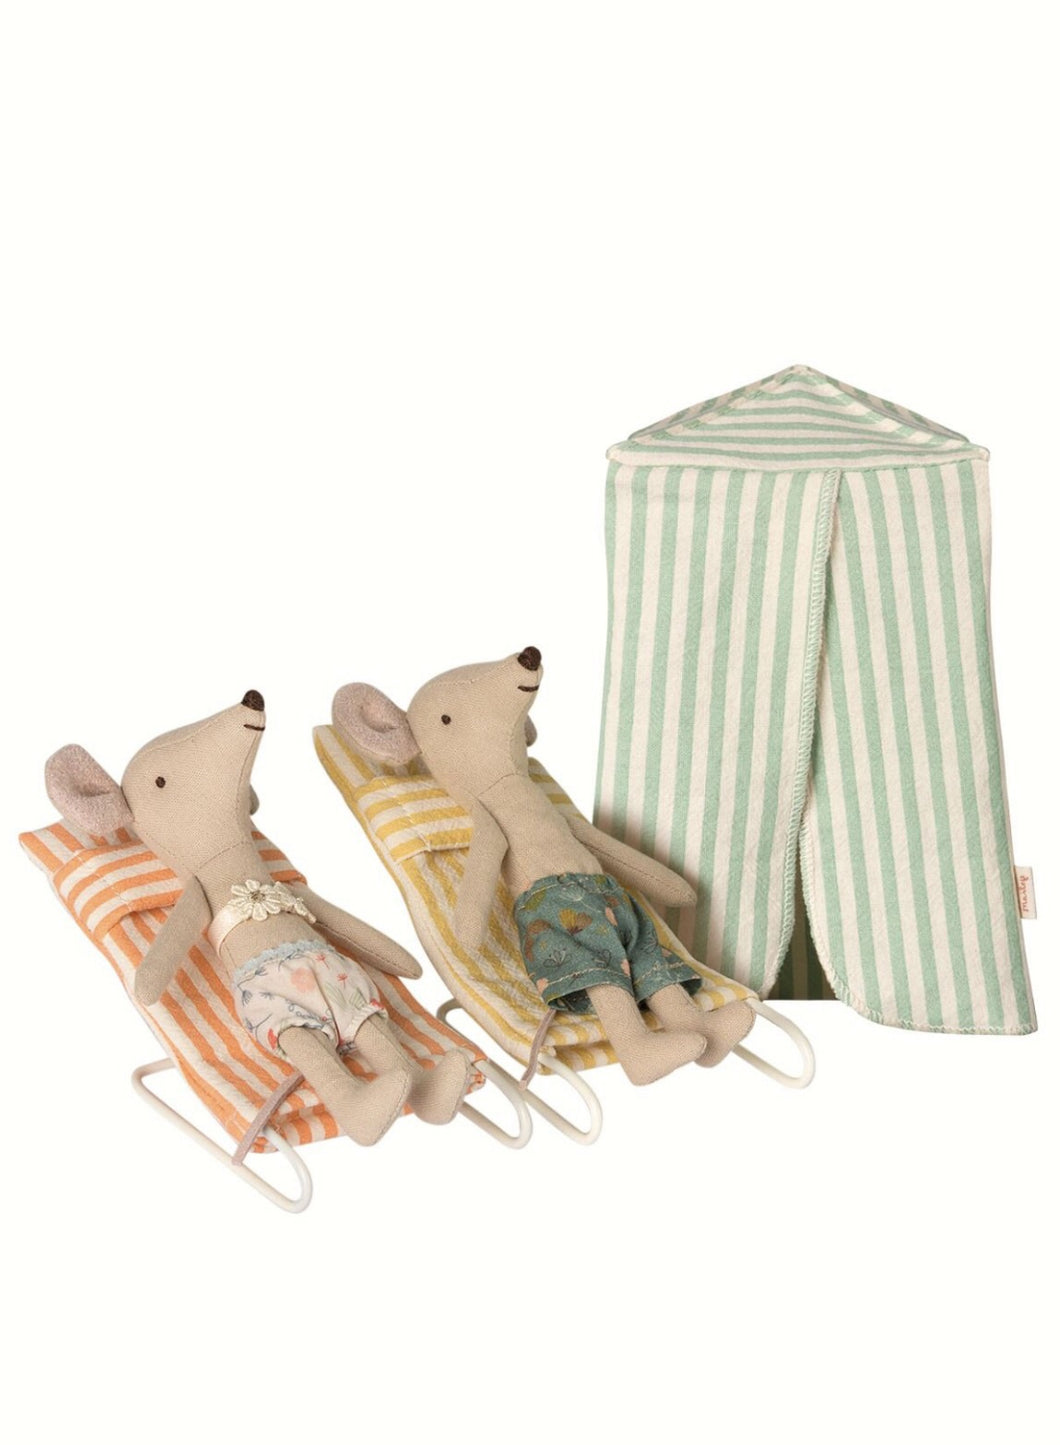 Mouse Vacation set with beach tent